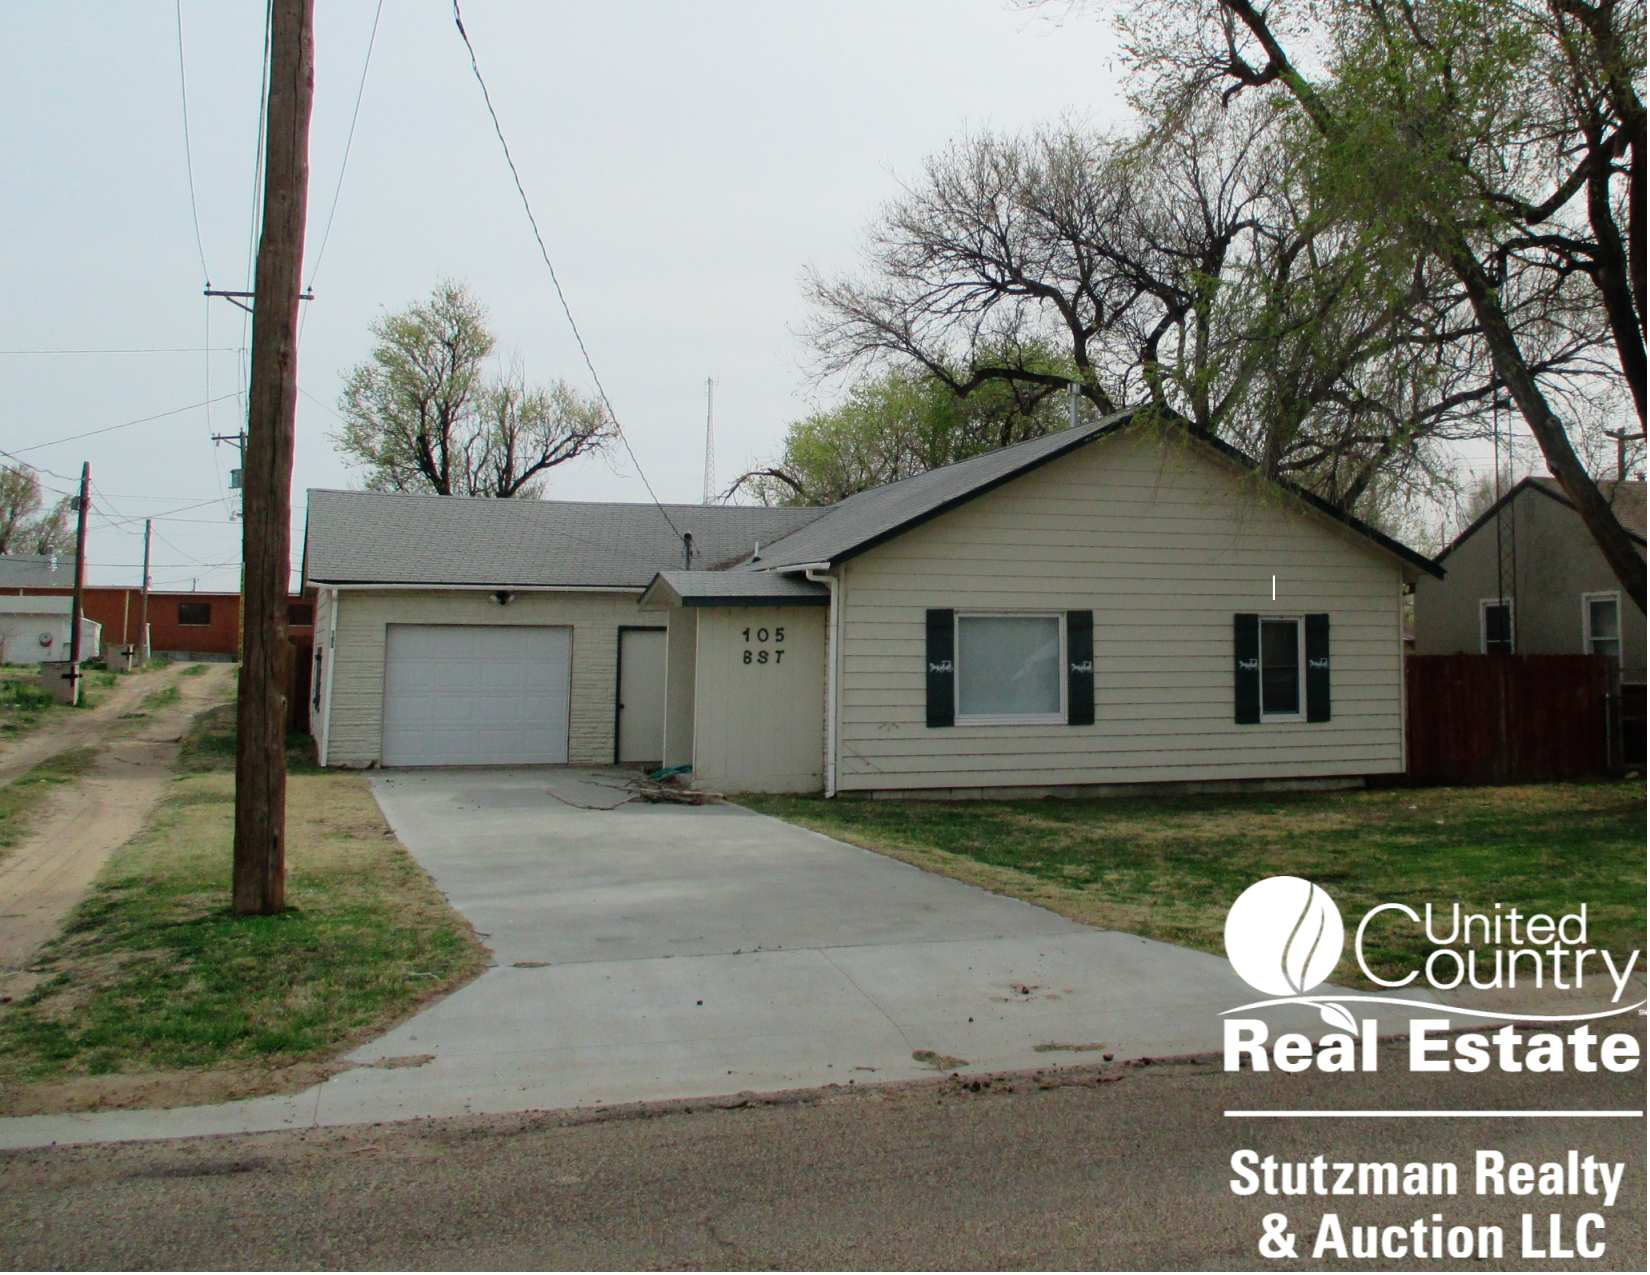 PRIVATE AUCTION - ELKHART, KS 2 BEDROOM, 1 BATH HOME